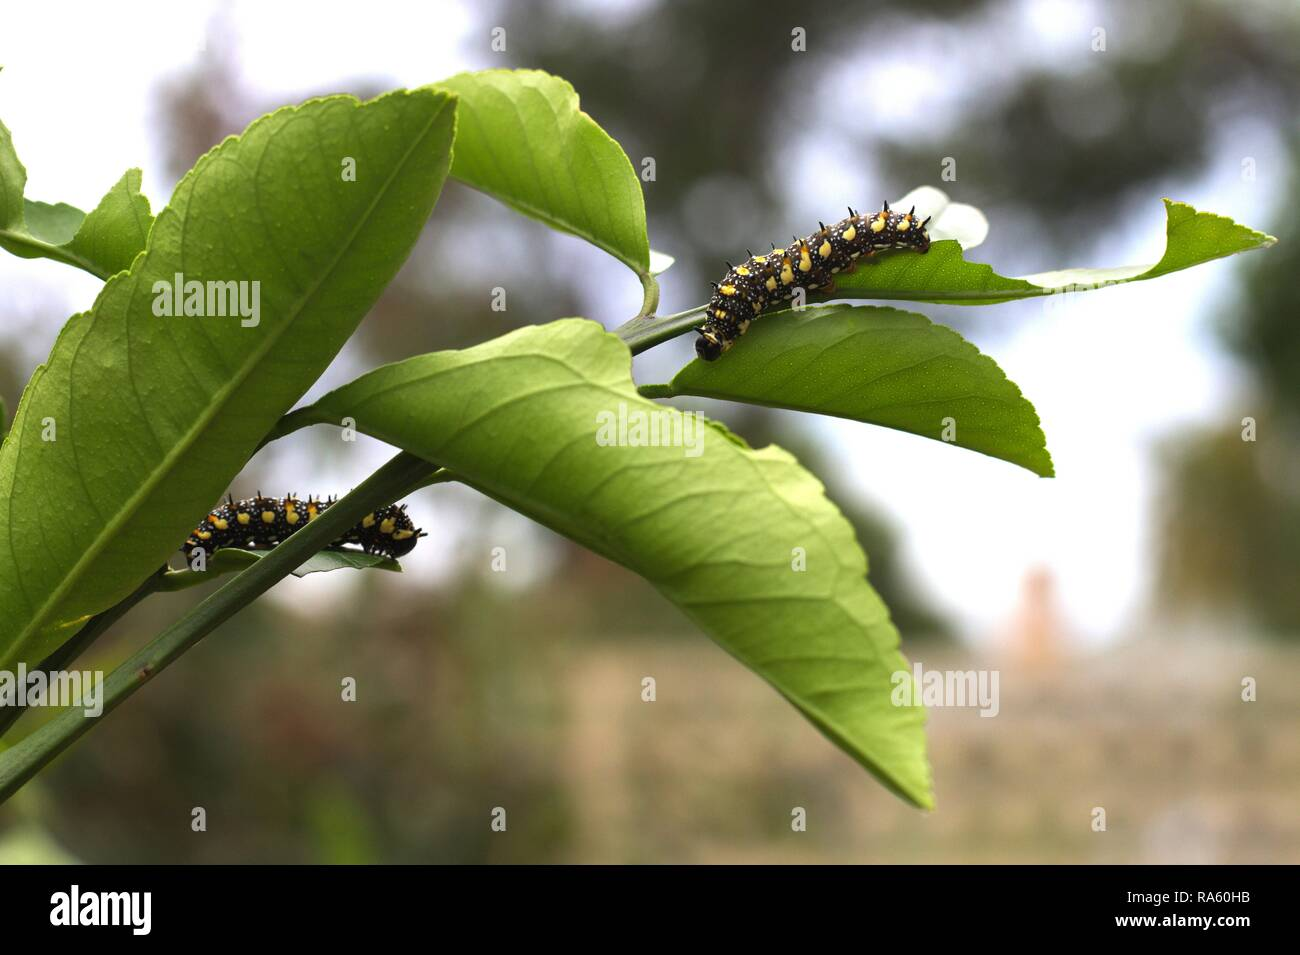 Two Caterpillars of Dainty Swallowtail Butterfly on citrus tree. Stock Photo